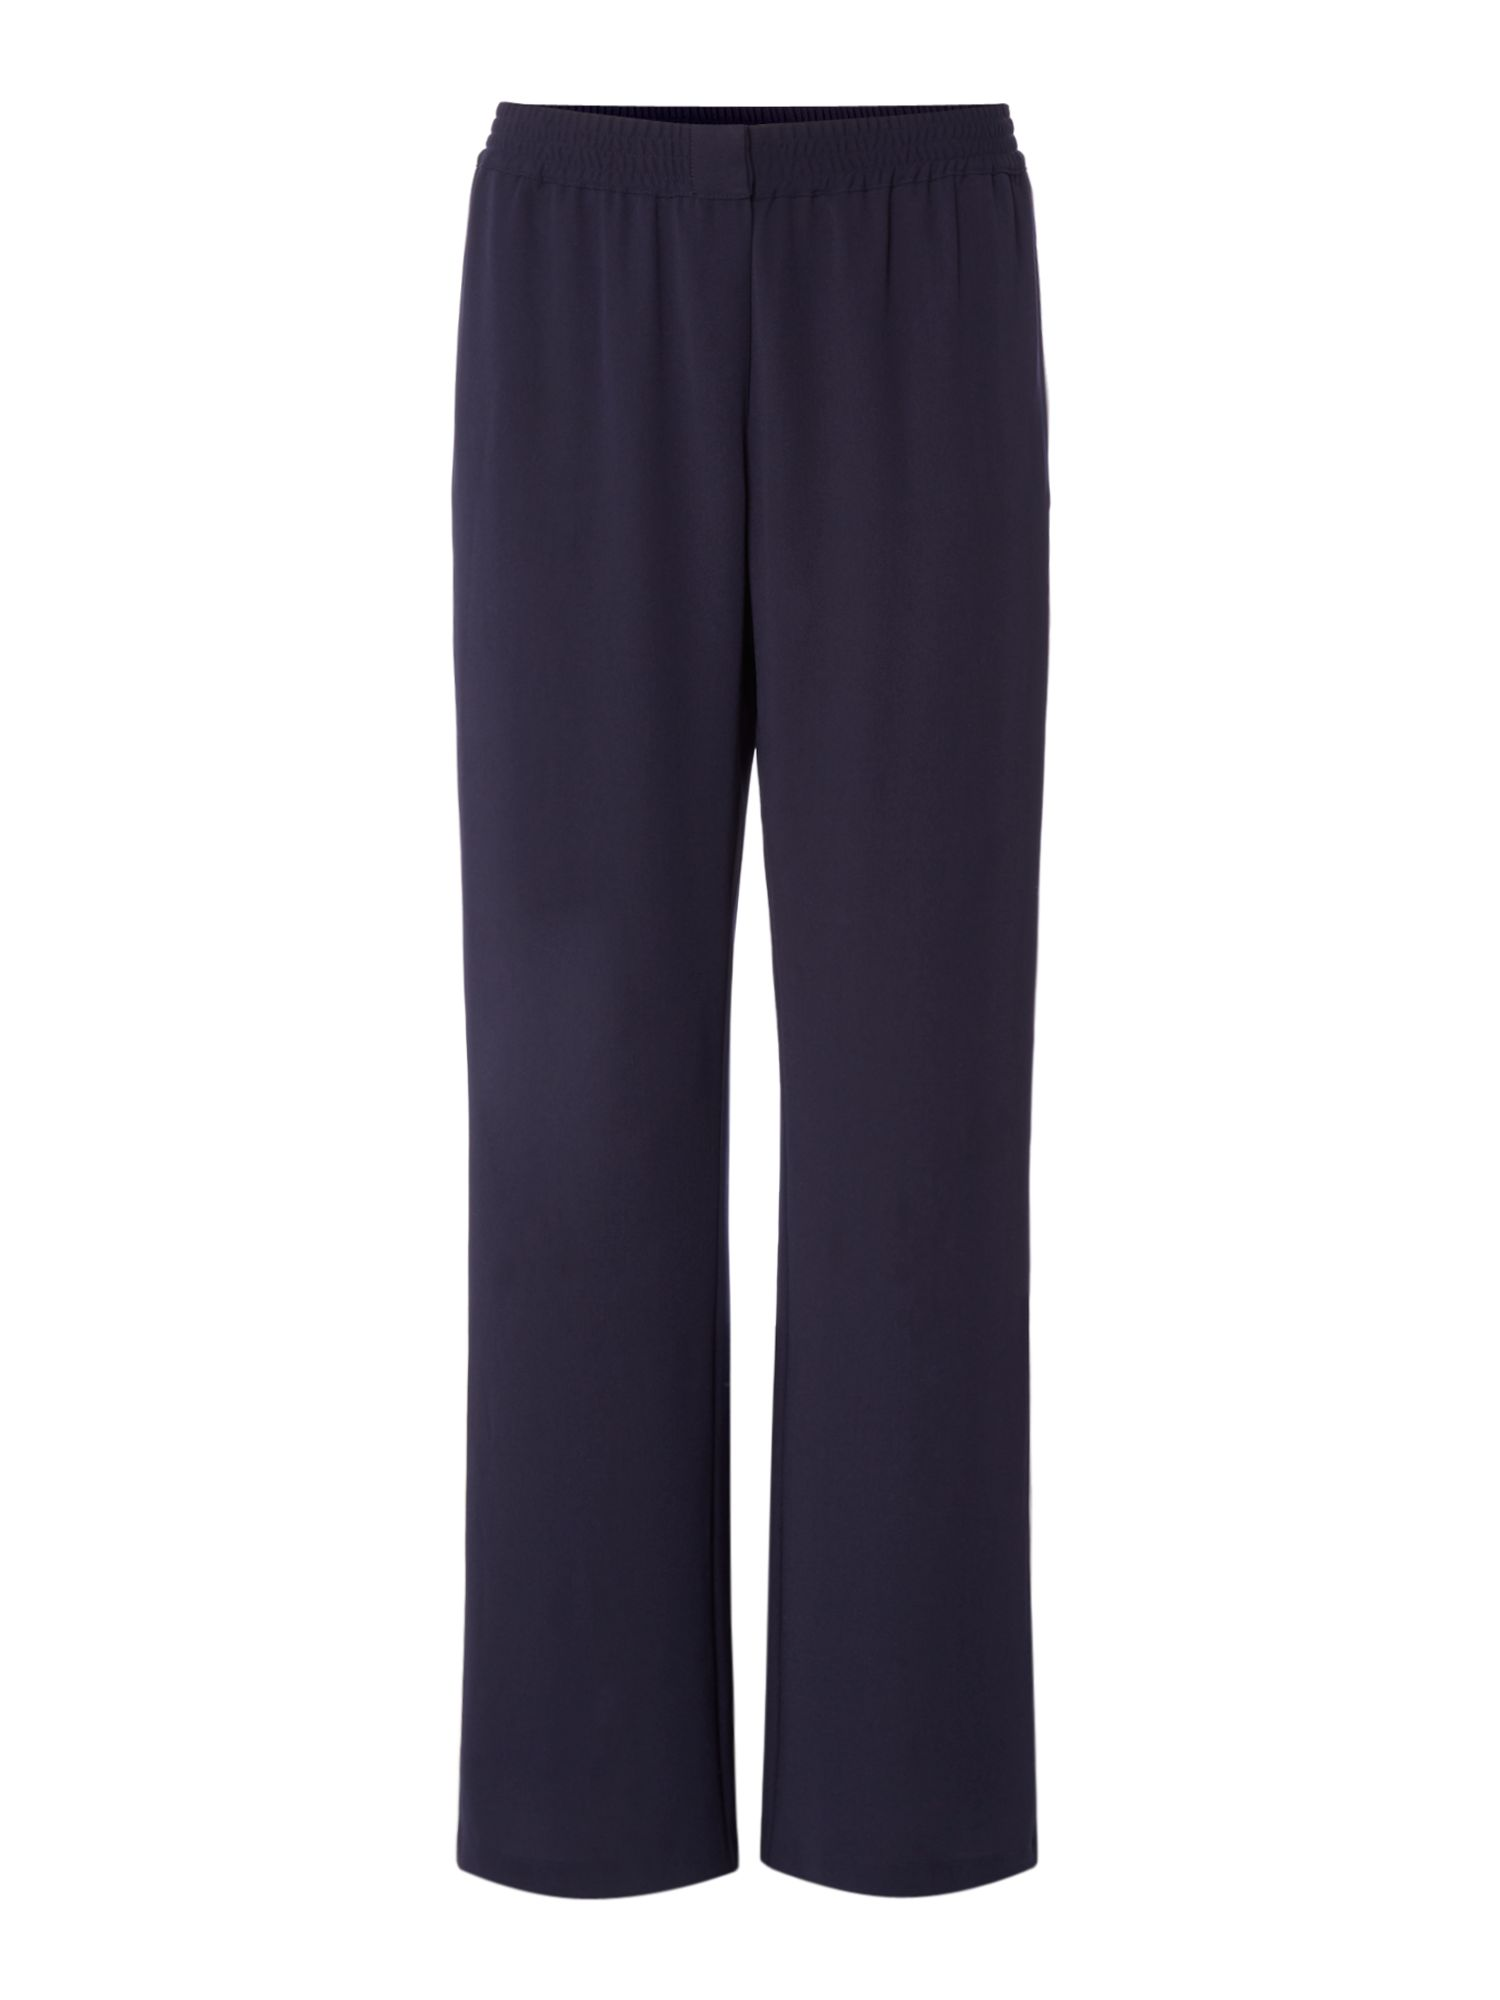 Maison De Nimes Colour Block Trouser, Blue